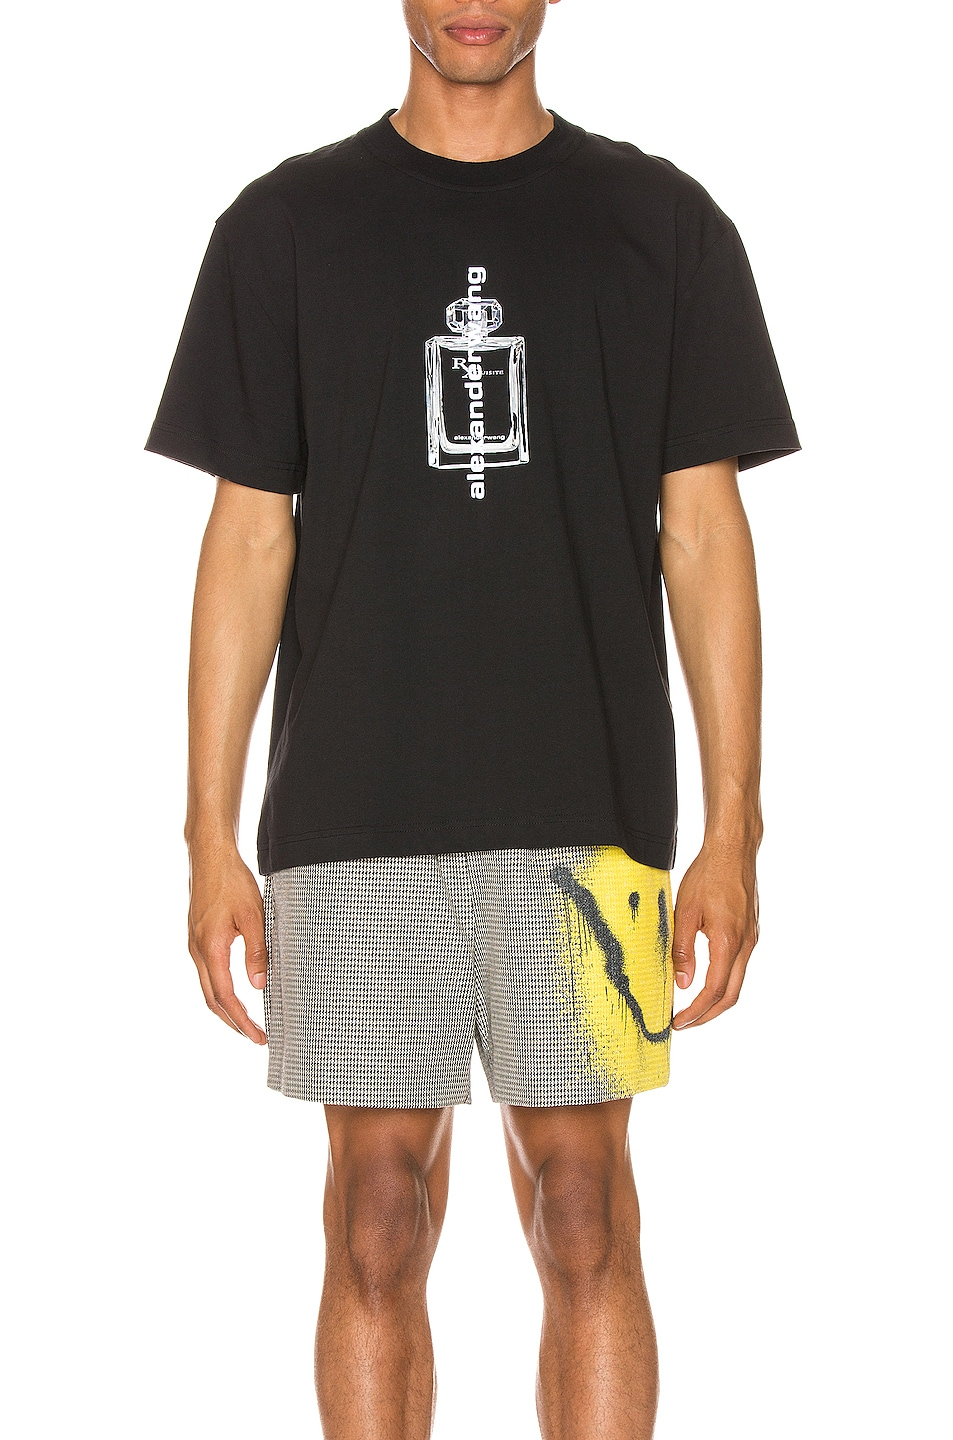 Image 1 of Alexander Wang Graphic T-Shirt in Black